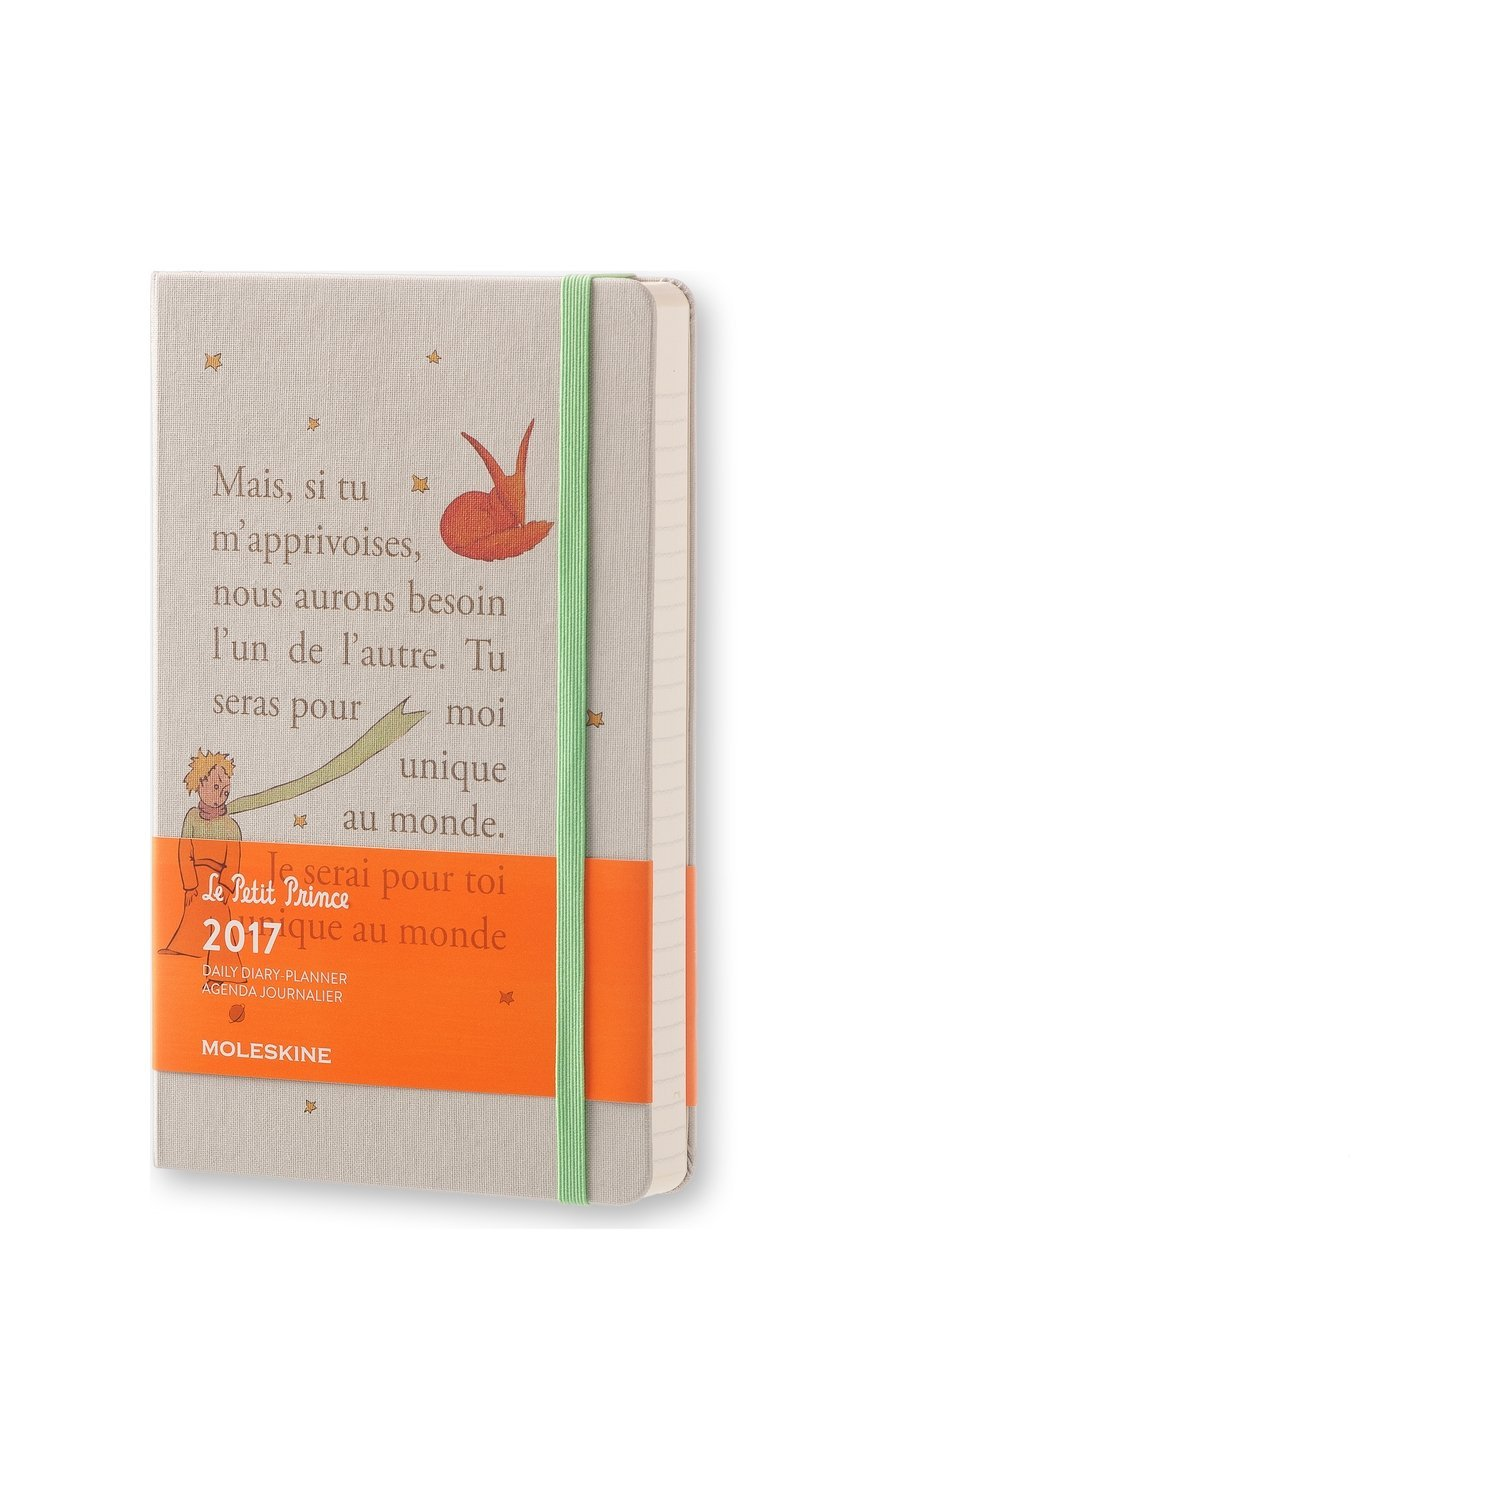 Moleskine 2017 Le Petit Prince Limited Edition Daily Planner ...